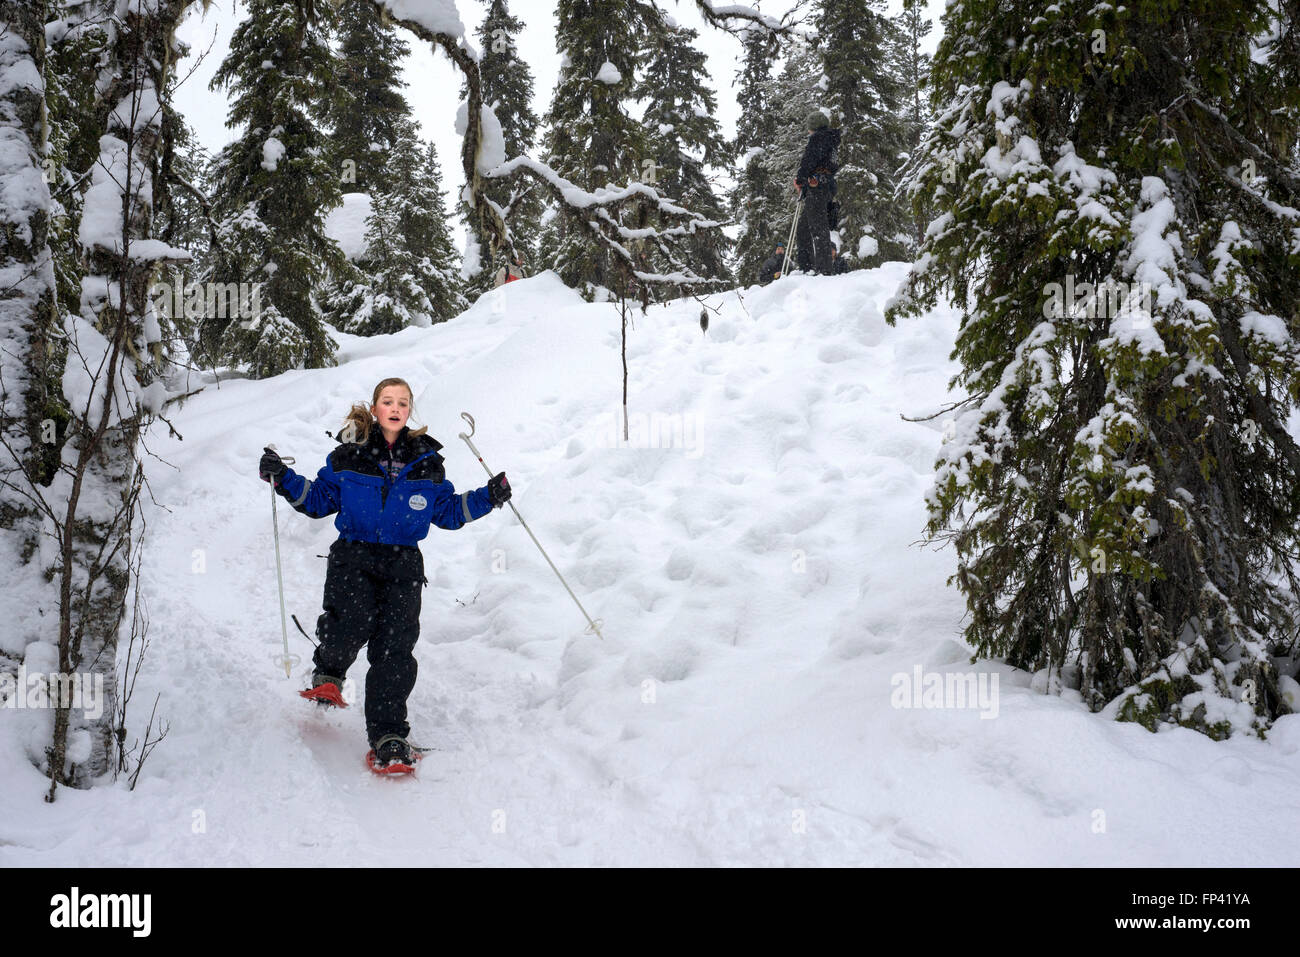 Salla, snowshoe trip to Ice Wall, Salla, Lapland, Finland. You can experience the winter nature even by walking - Stock Image